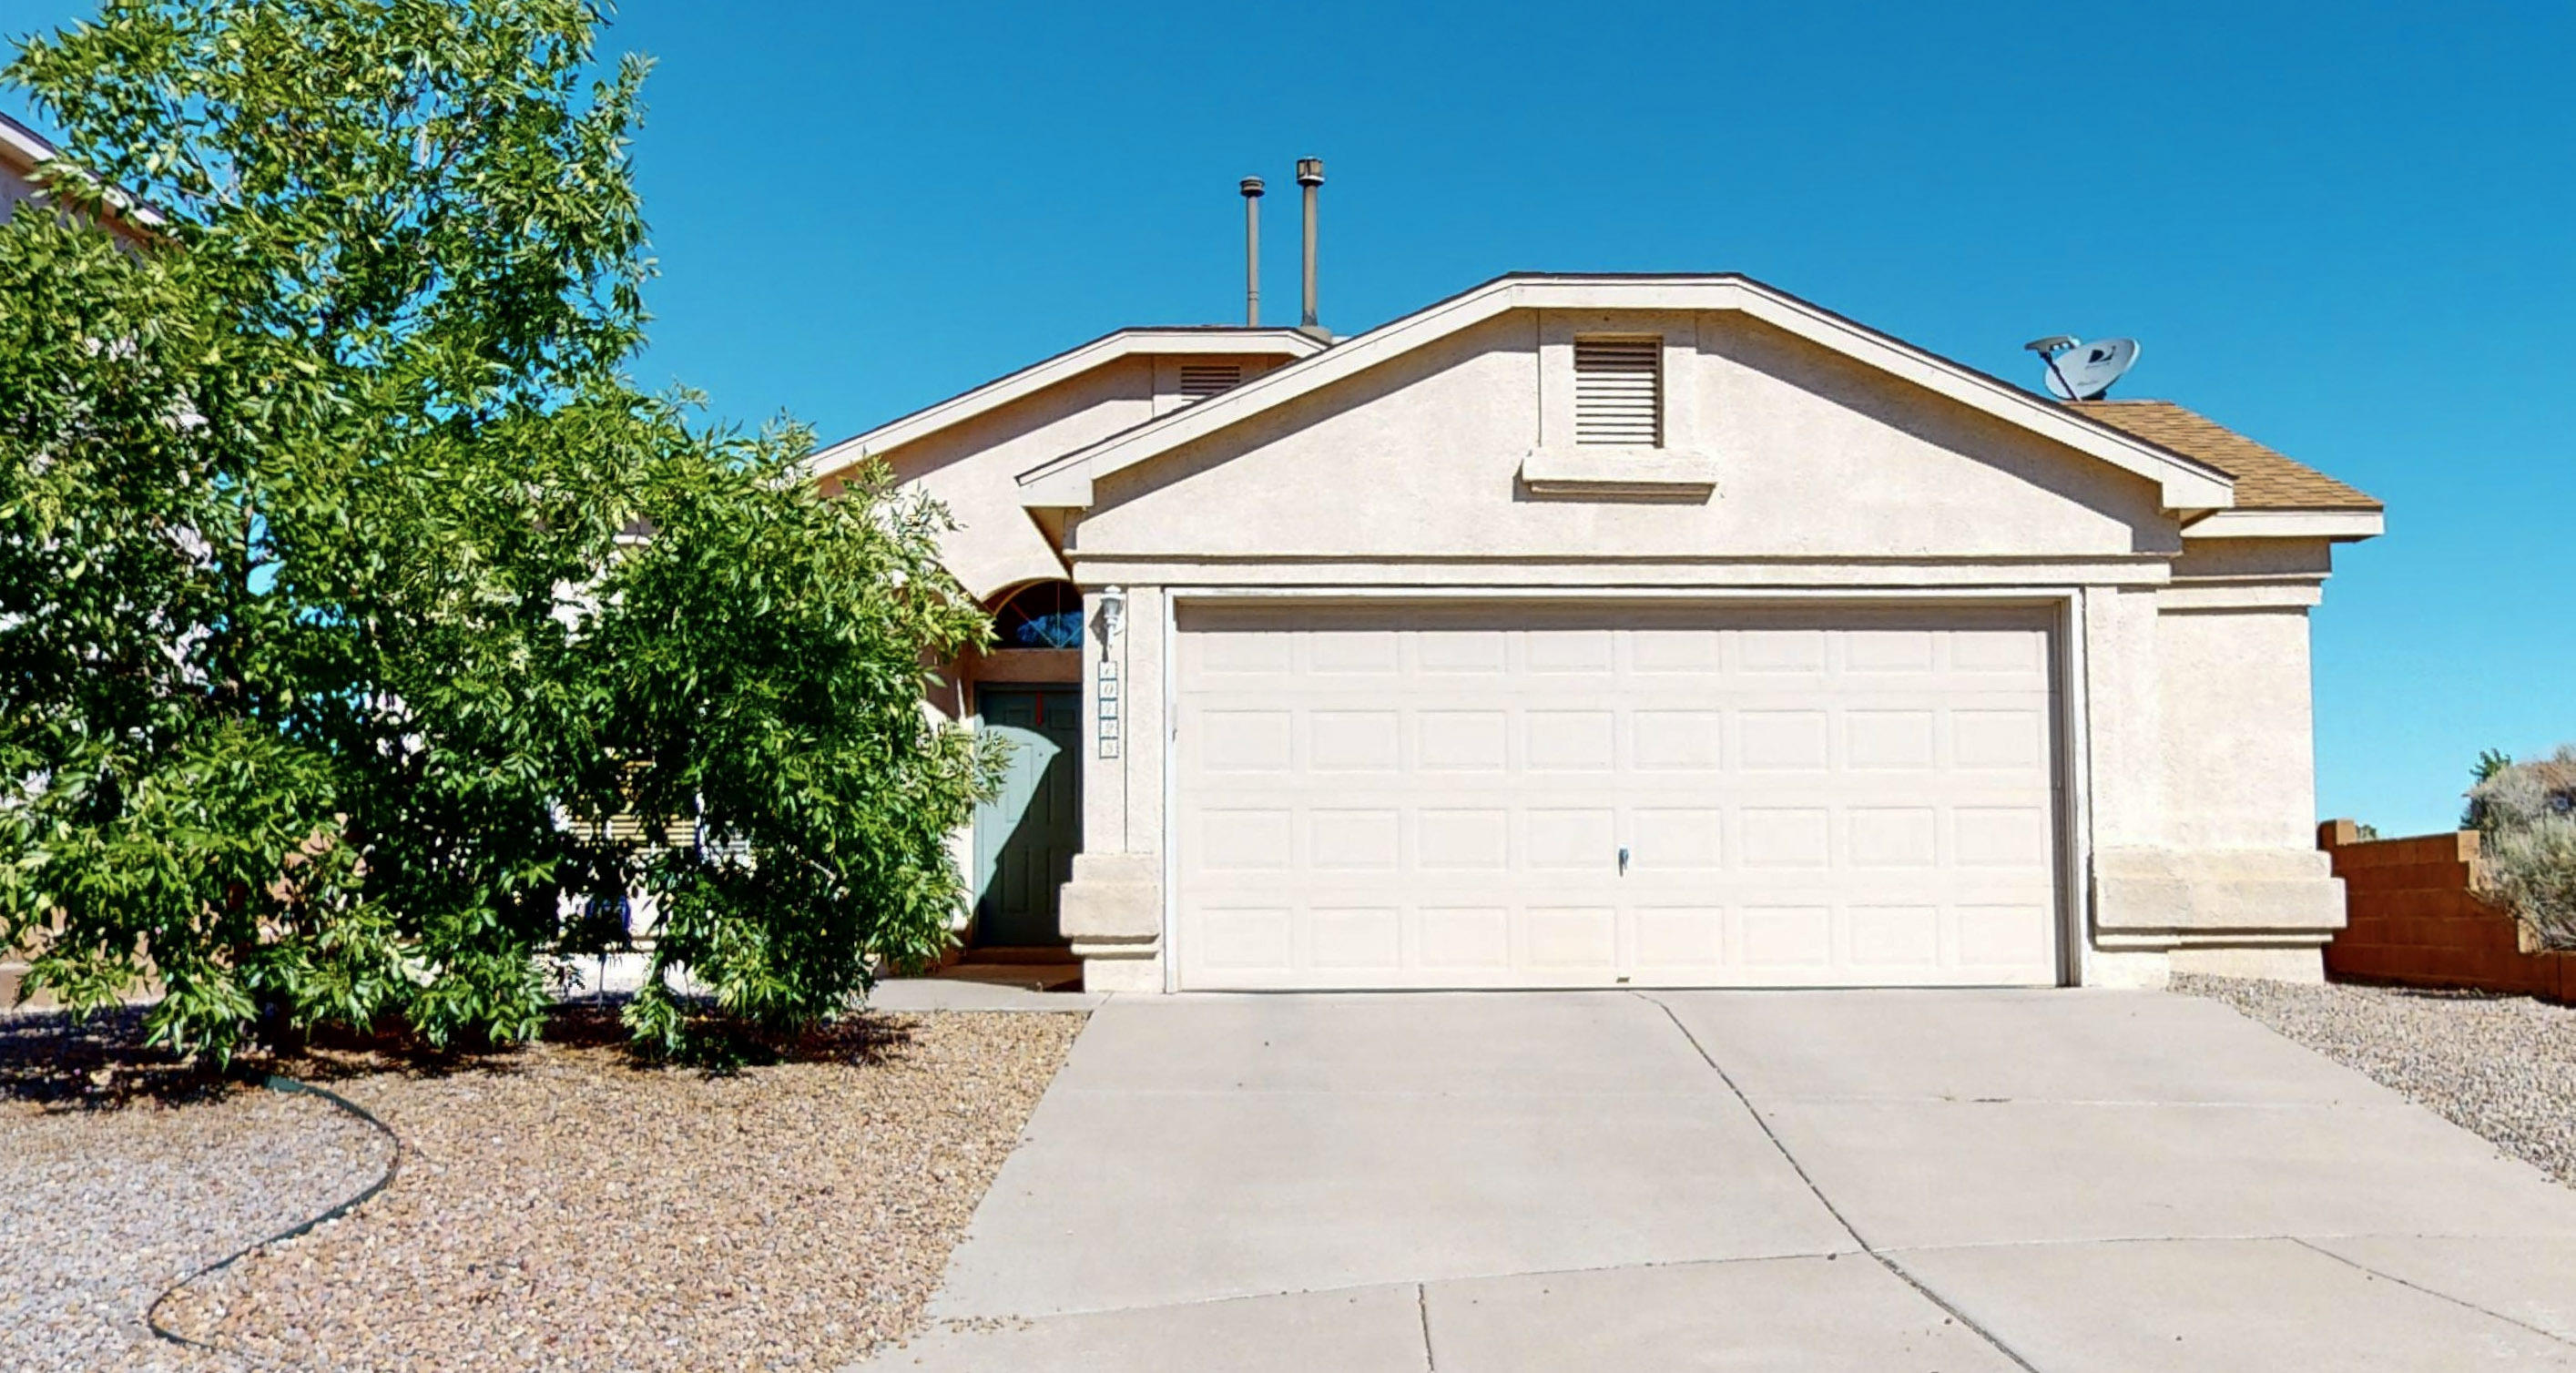 This beautiful and well maintained home is located in the North West Albuquerque close to schools, shopping and much more. This Home features an open floorplan and great layout, New water heater and Cooling system. Backyard is HUGE,  features a pond and Dog run. Schedule a time to see it today!